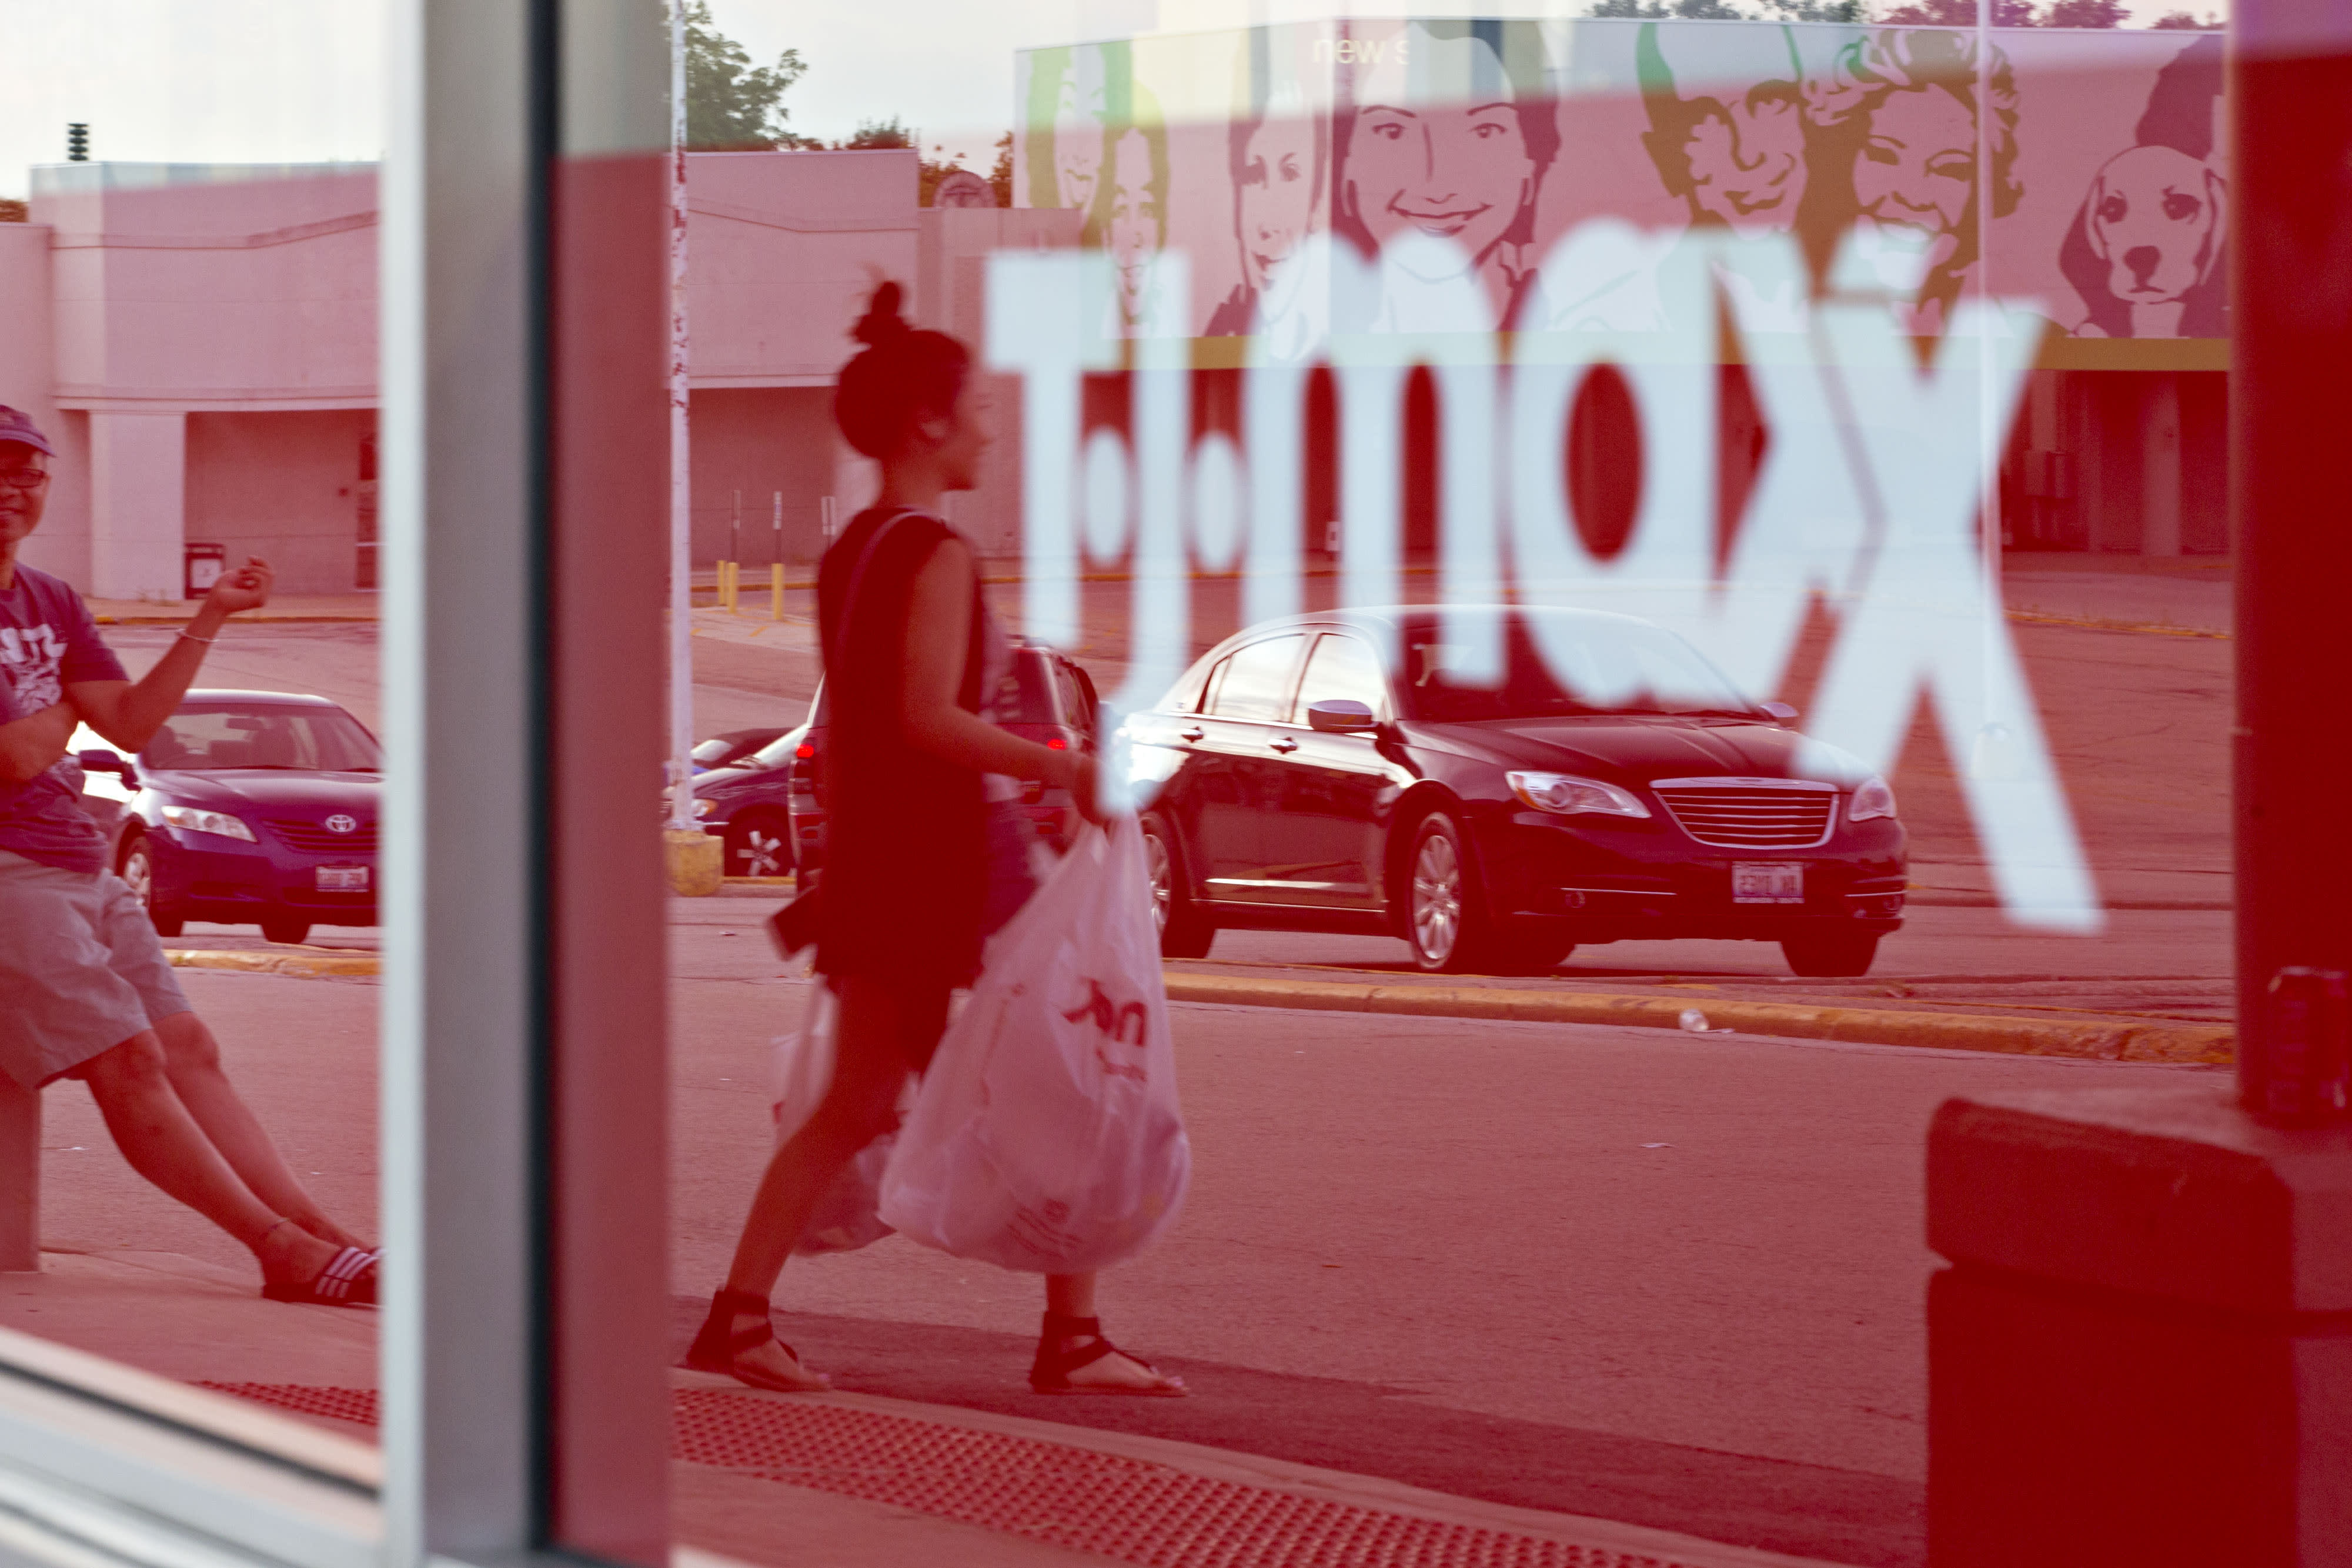 Discount retailers TJX, Ross stage a comeback as shoppers crave 'treasure hunting' for clothes again